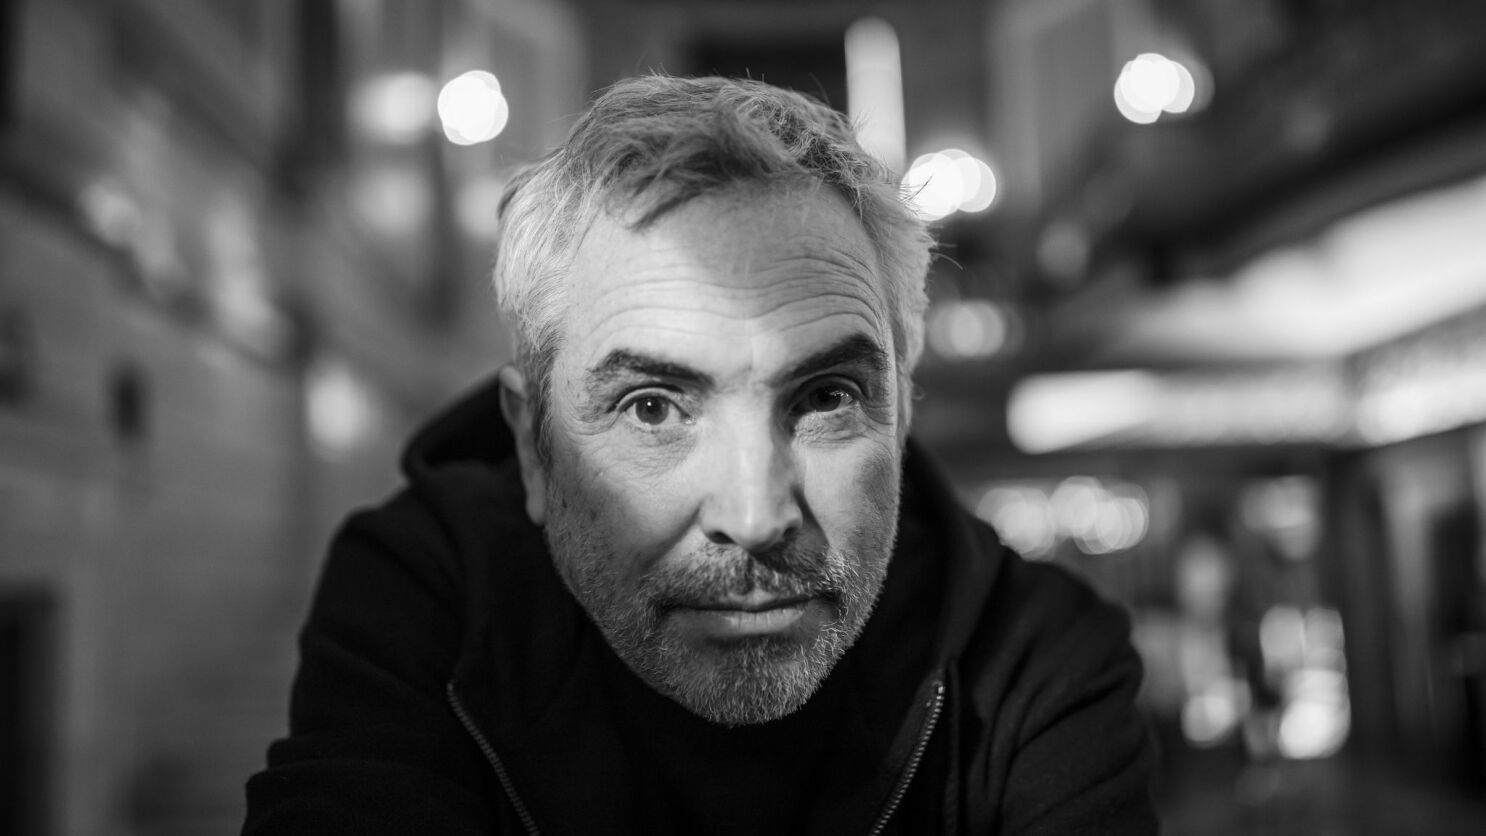 Roma's' Alfonso Cuarón shows us the Mexico City streets that shaped